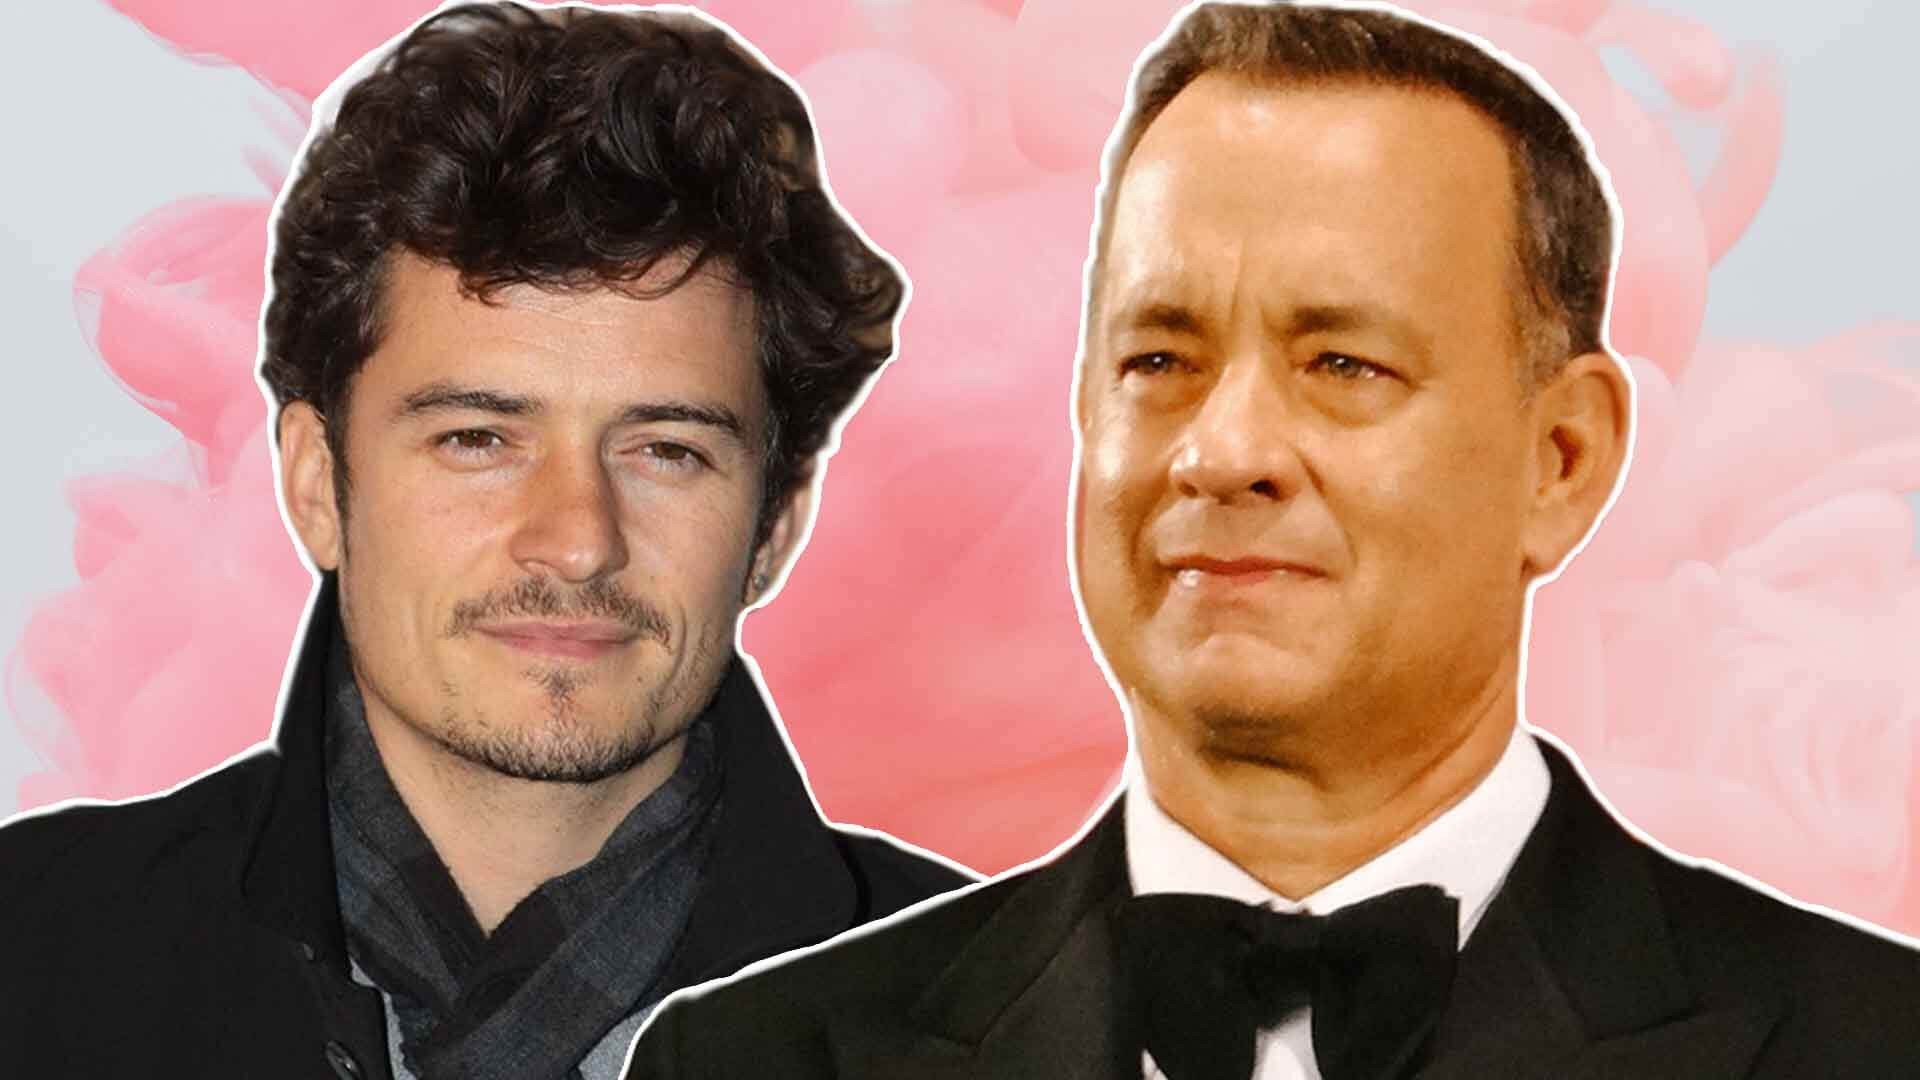 Tom Hanks, Orlando Bloom, and About 100 Celebs Celebrate 10 Meat-Free Years